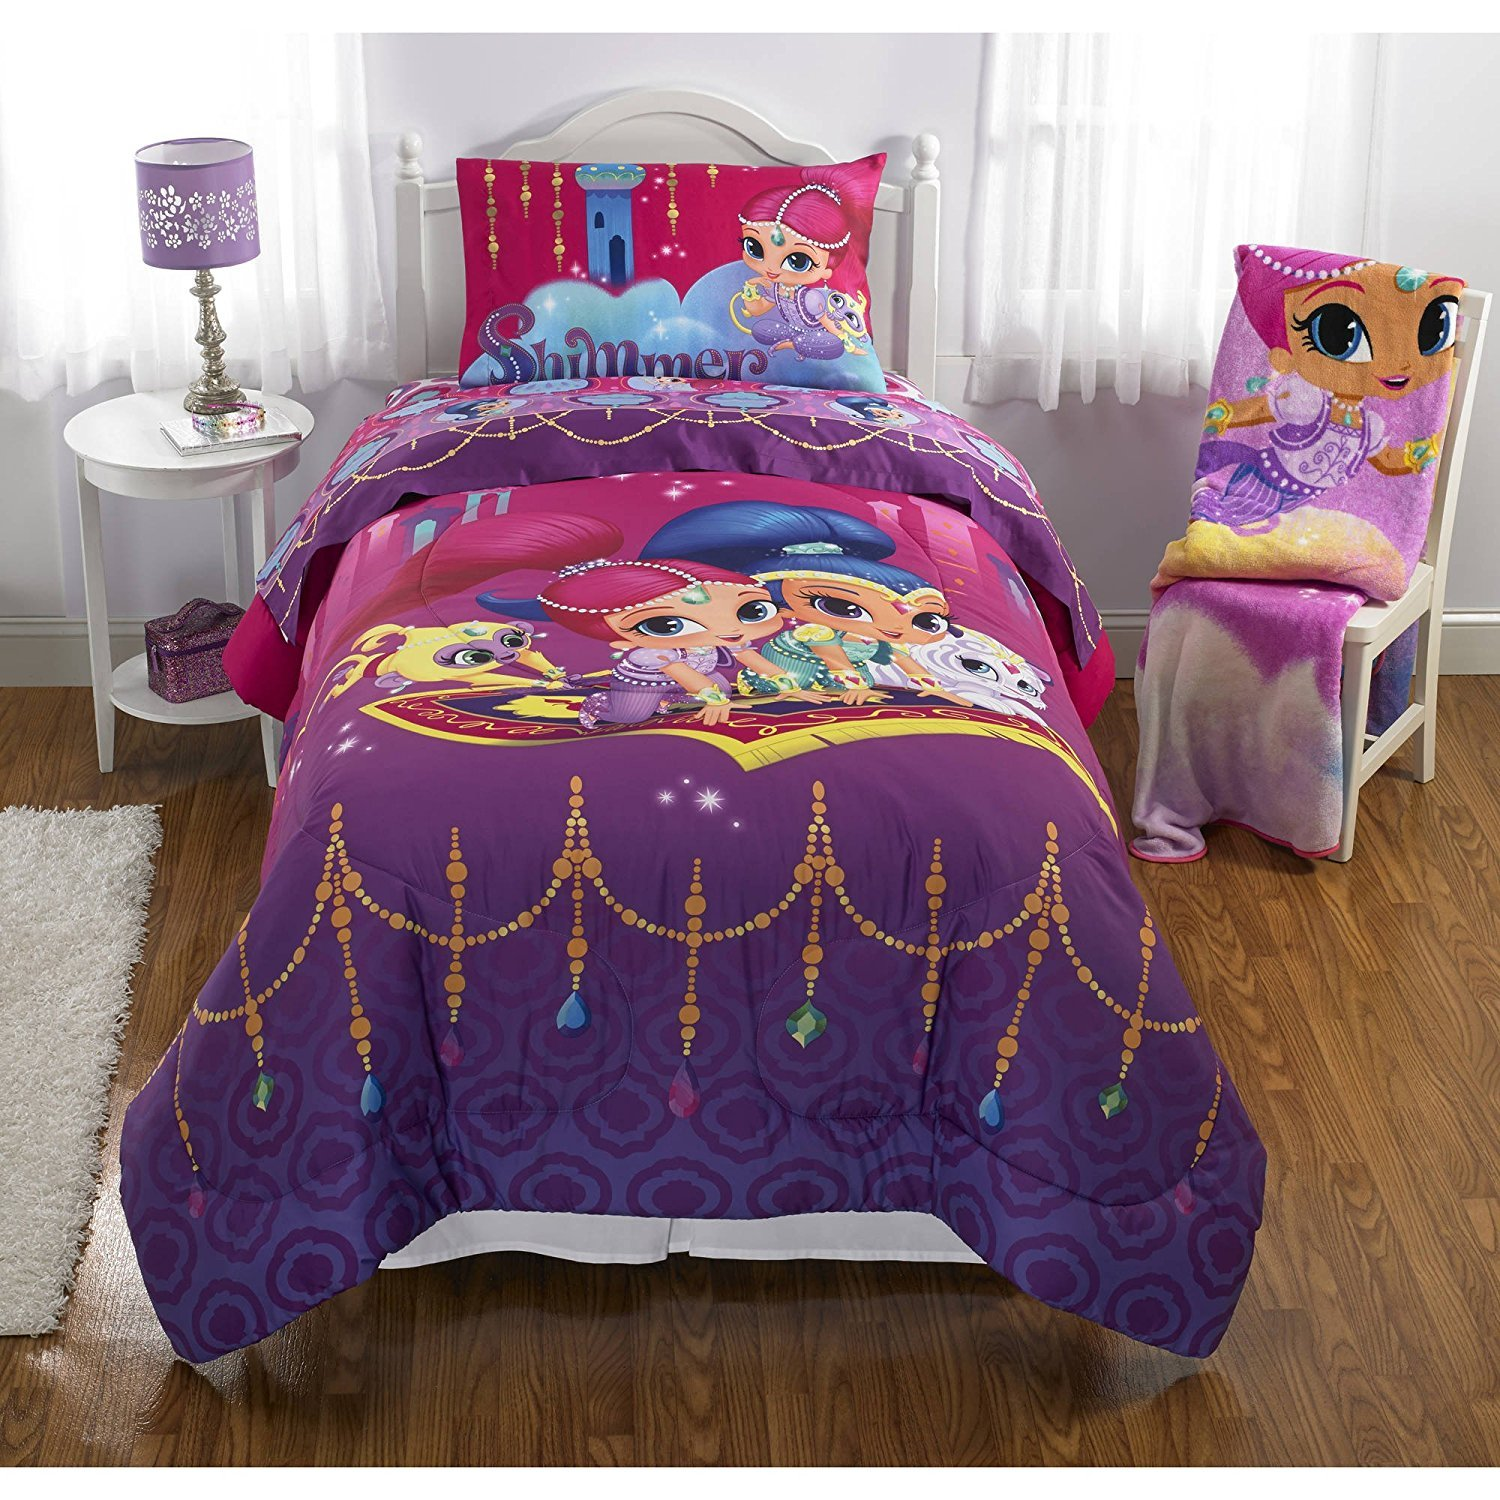 Shimmer and Shine Kids 5 Piece Full Bedding Set with Comforter and Sheet Set